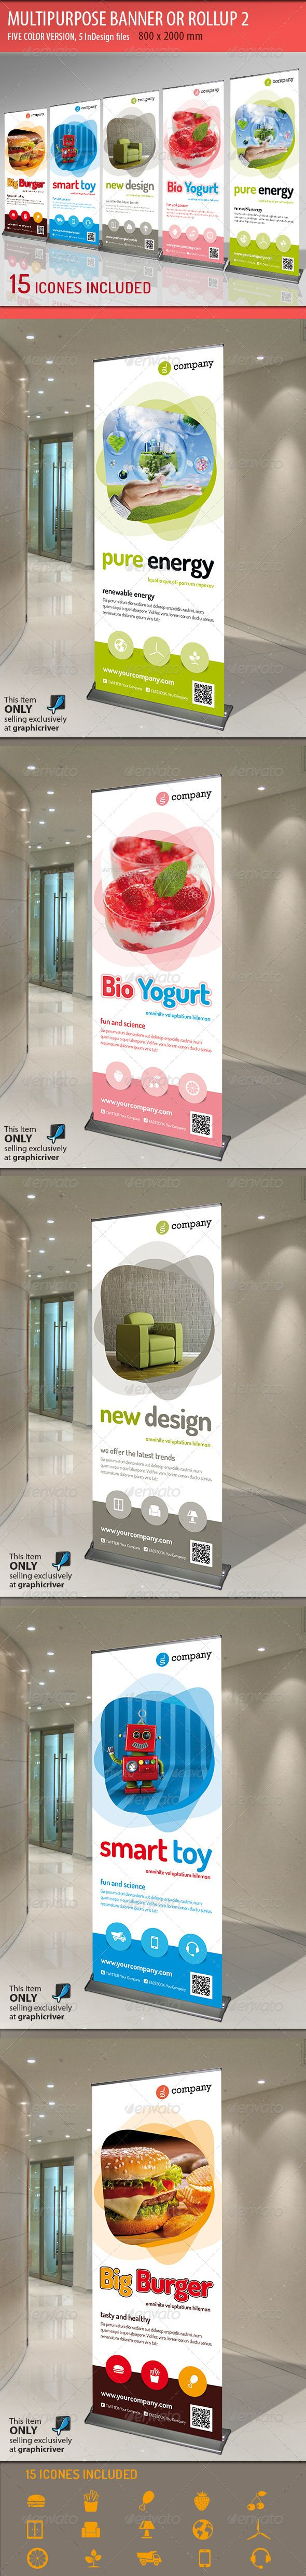 Multipurpose Banner or Rollup 2  #GraphicRiver         Modern and elegant design for banner/rollup. Perfect for manufacturers and sallers and business promotion. All elements are editable.  	 5 templates with different color variations.  FEATURES  Adobe InDesign CS3 and higher)  800×2000 mm (31.5×78.74 inches) + bleeds 25 mm  Ready for print (200 DPI CMYK)  Organized Layers